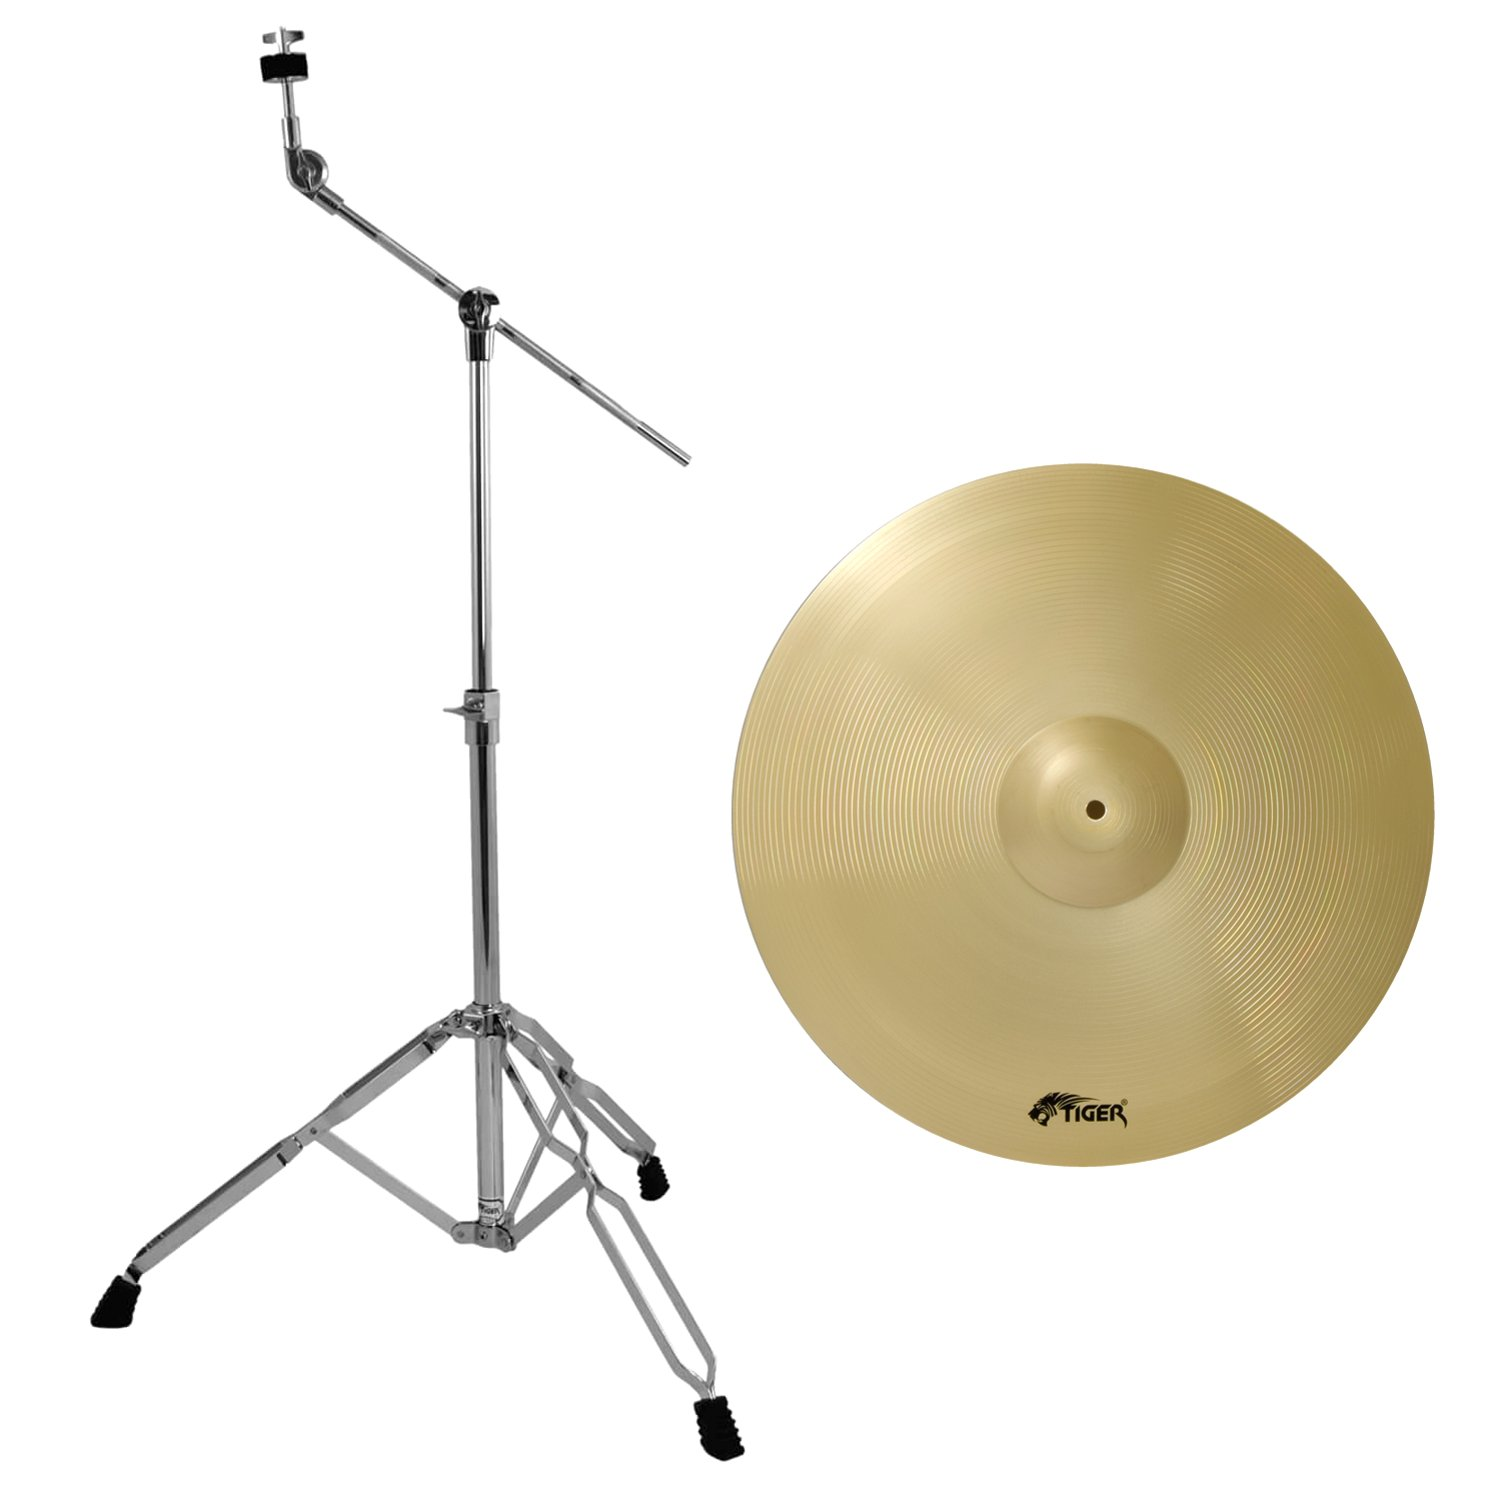 tiger ride cymbal stand package ebay. Black Bedroom Furniture Sets. Home Design Ideas